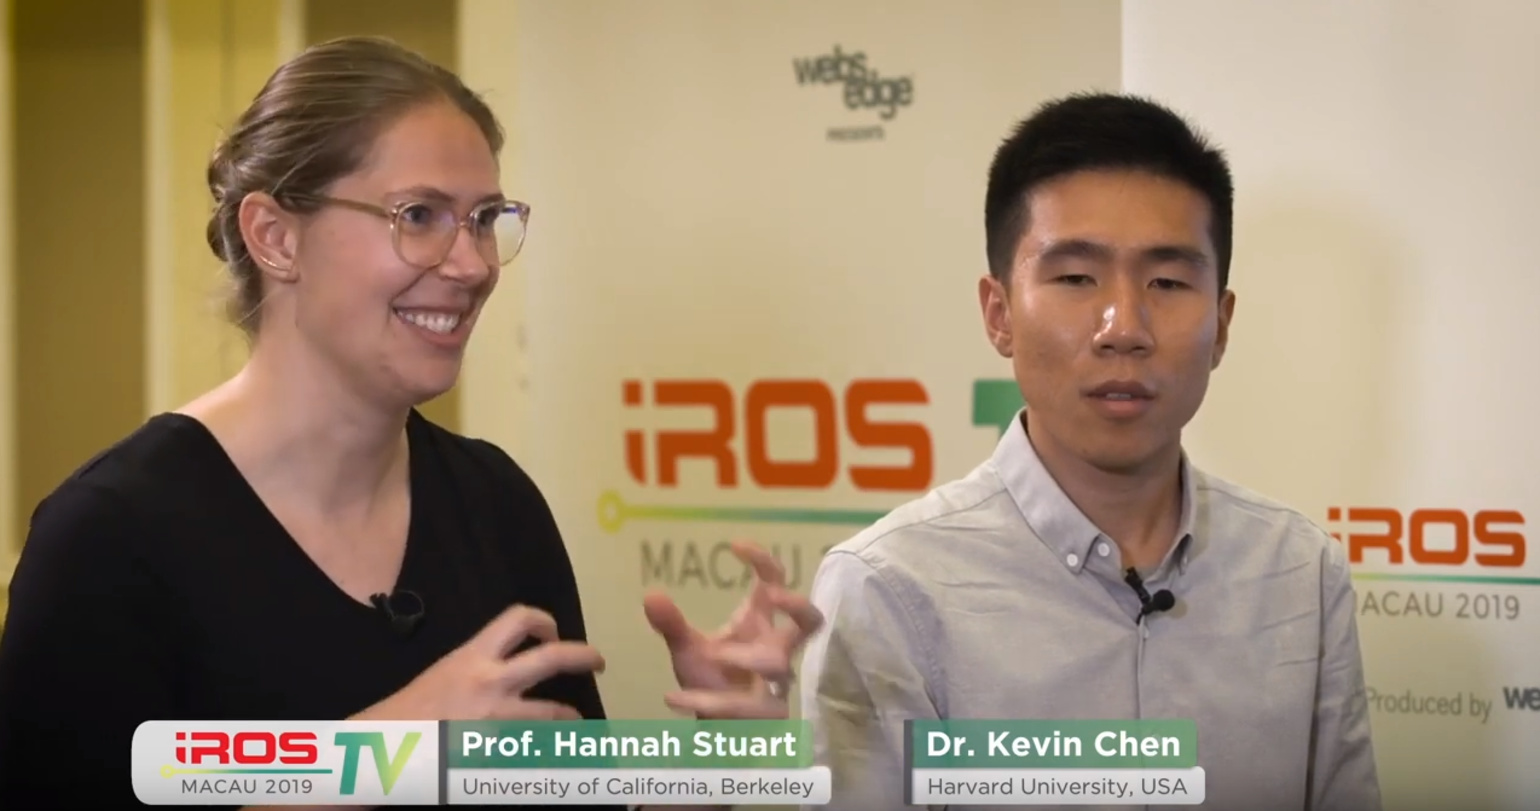 IROS TV 2019- How to Build a Robot: Marine Bio-inspired Soft Robotics